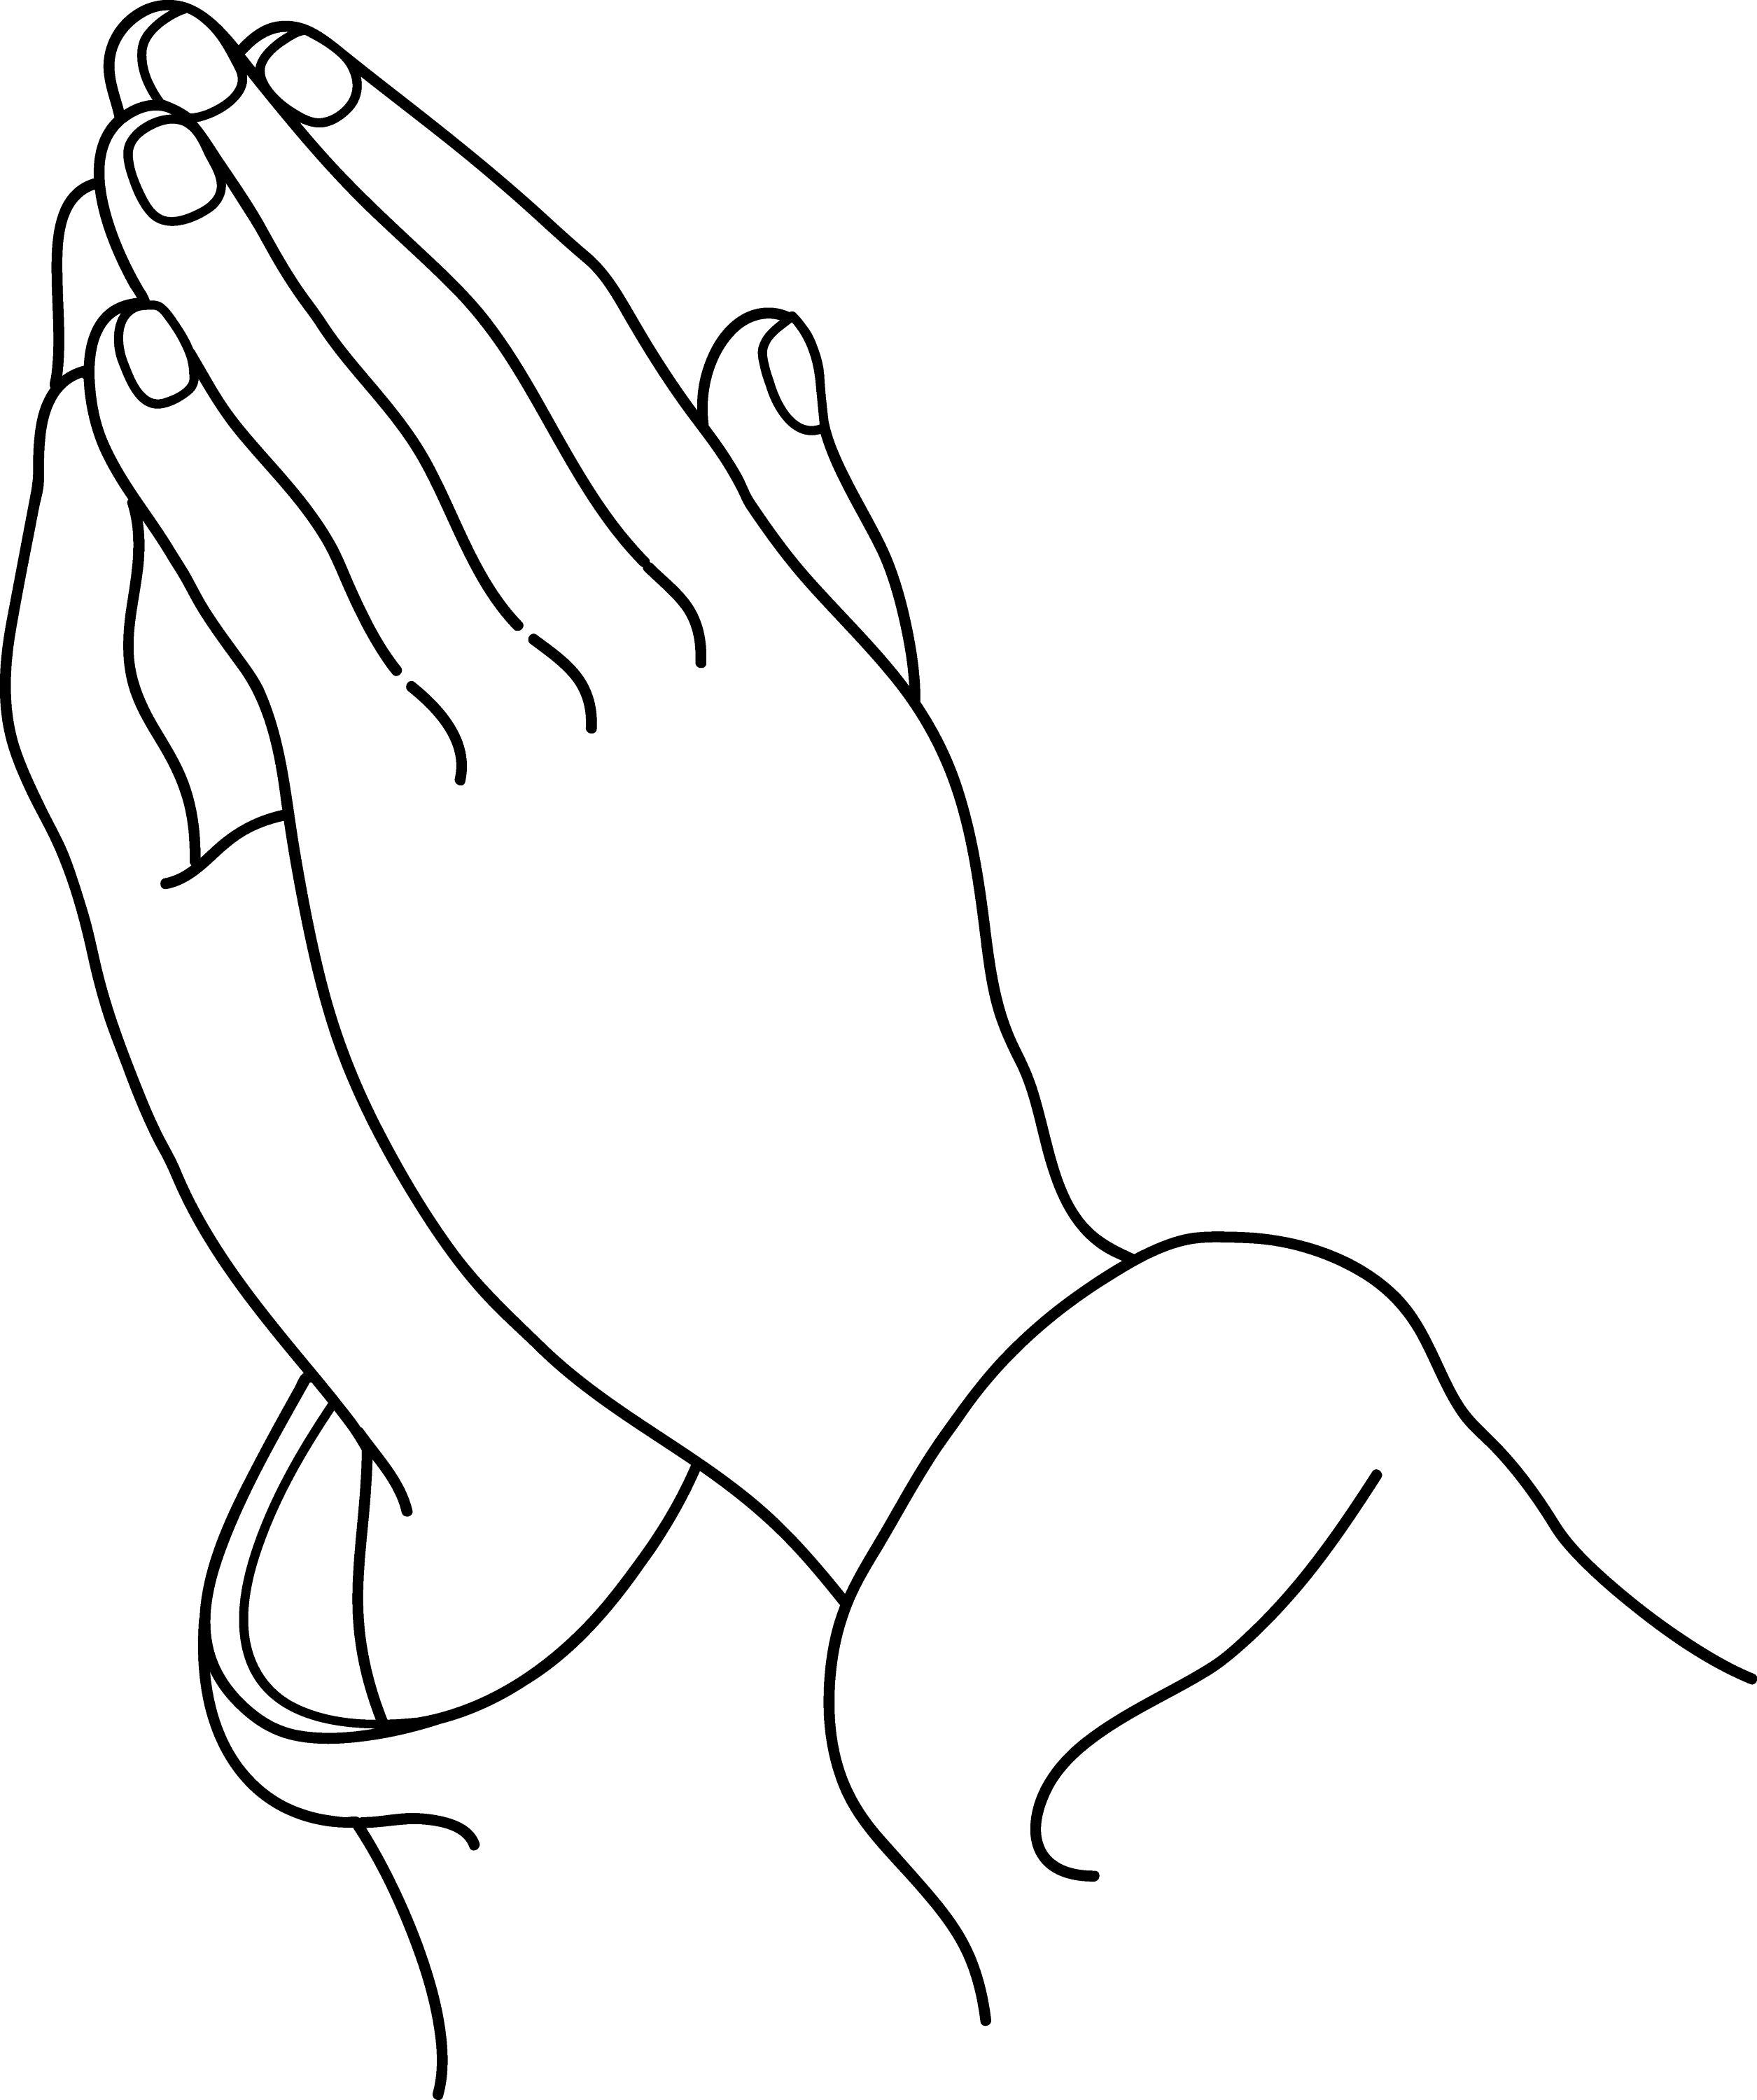 Praying Hands Line Art - Free Clip Art